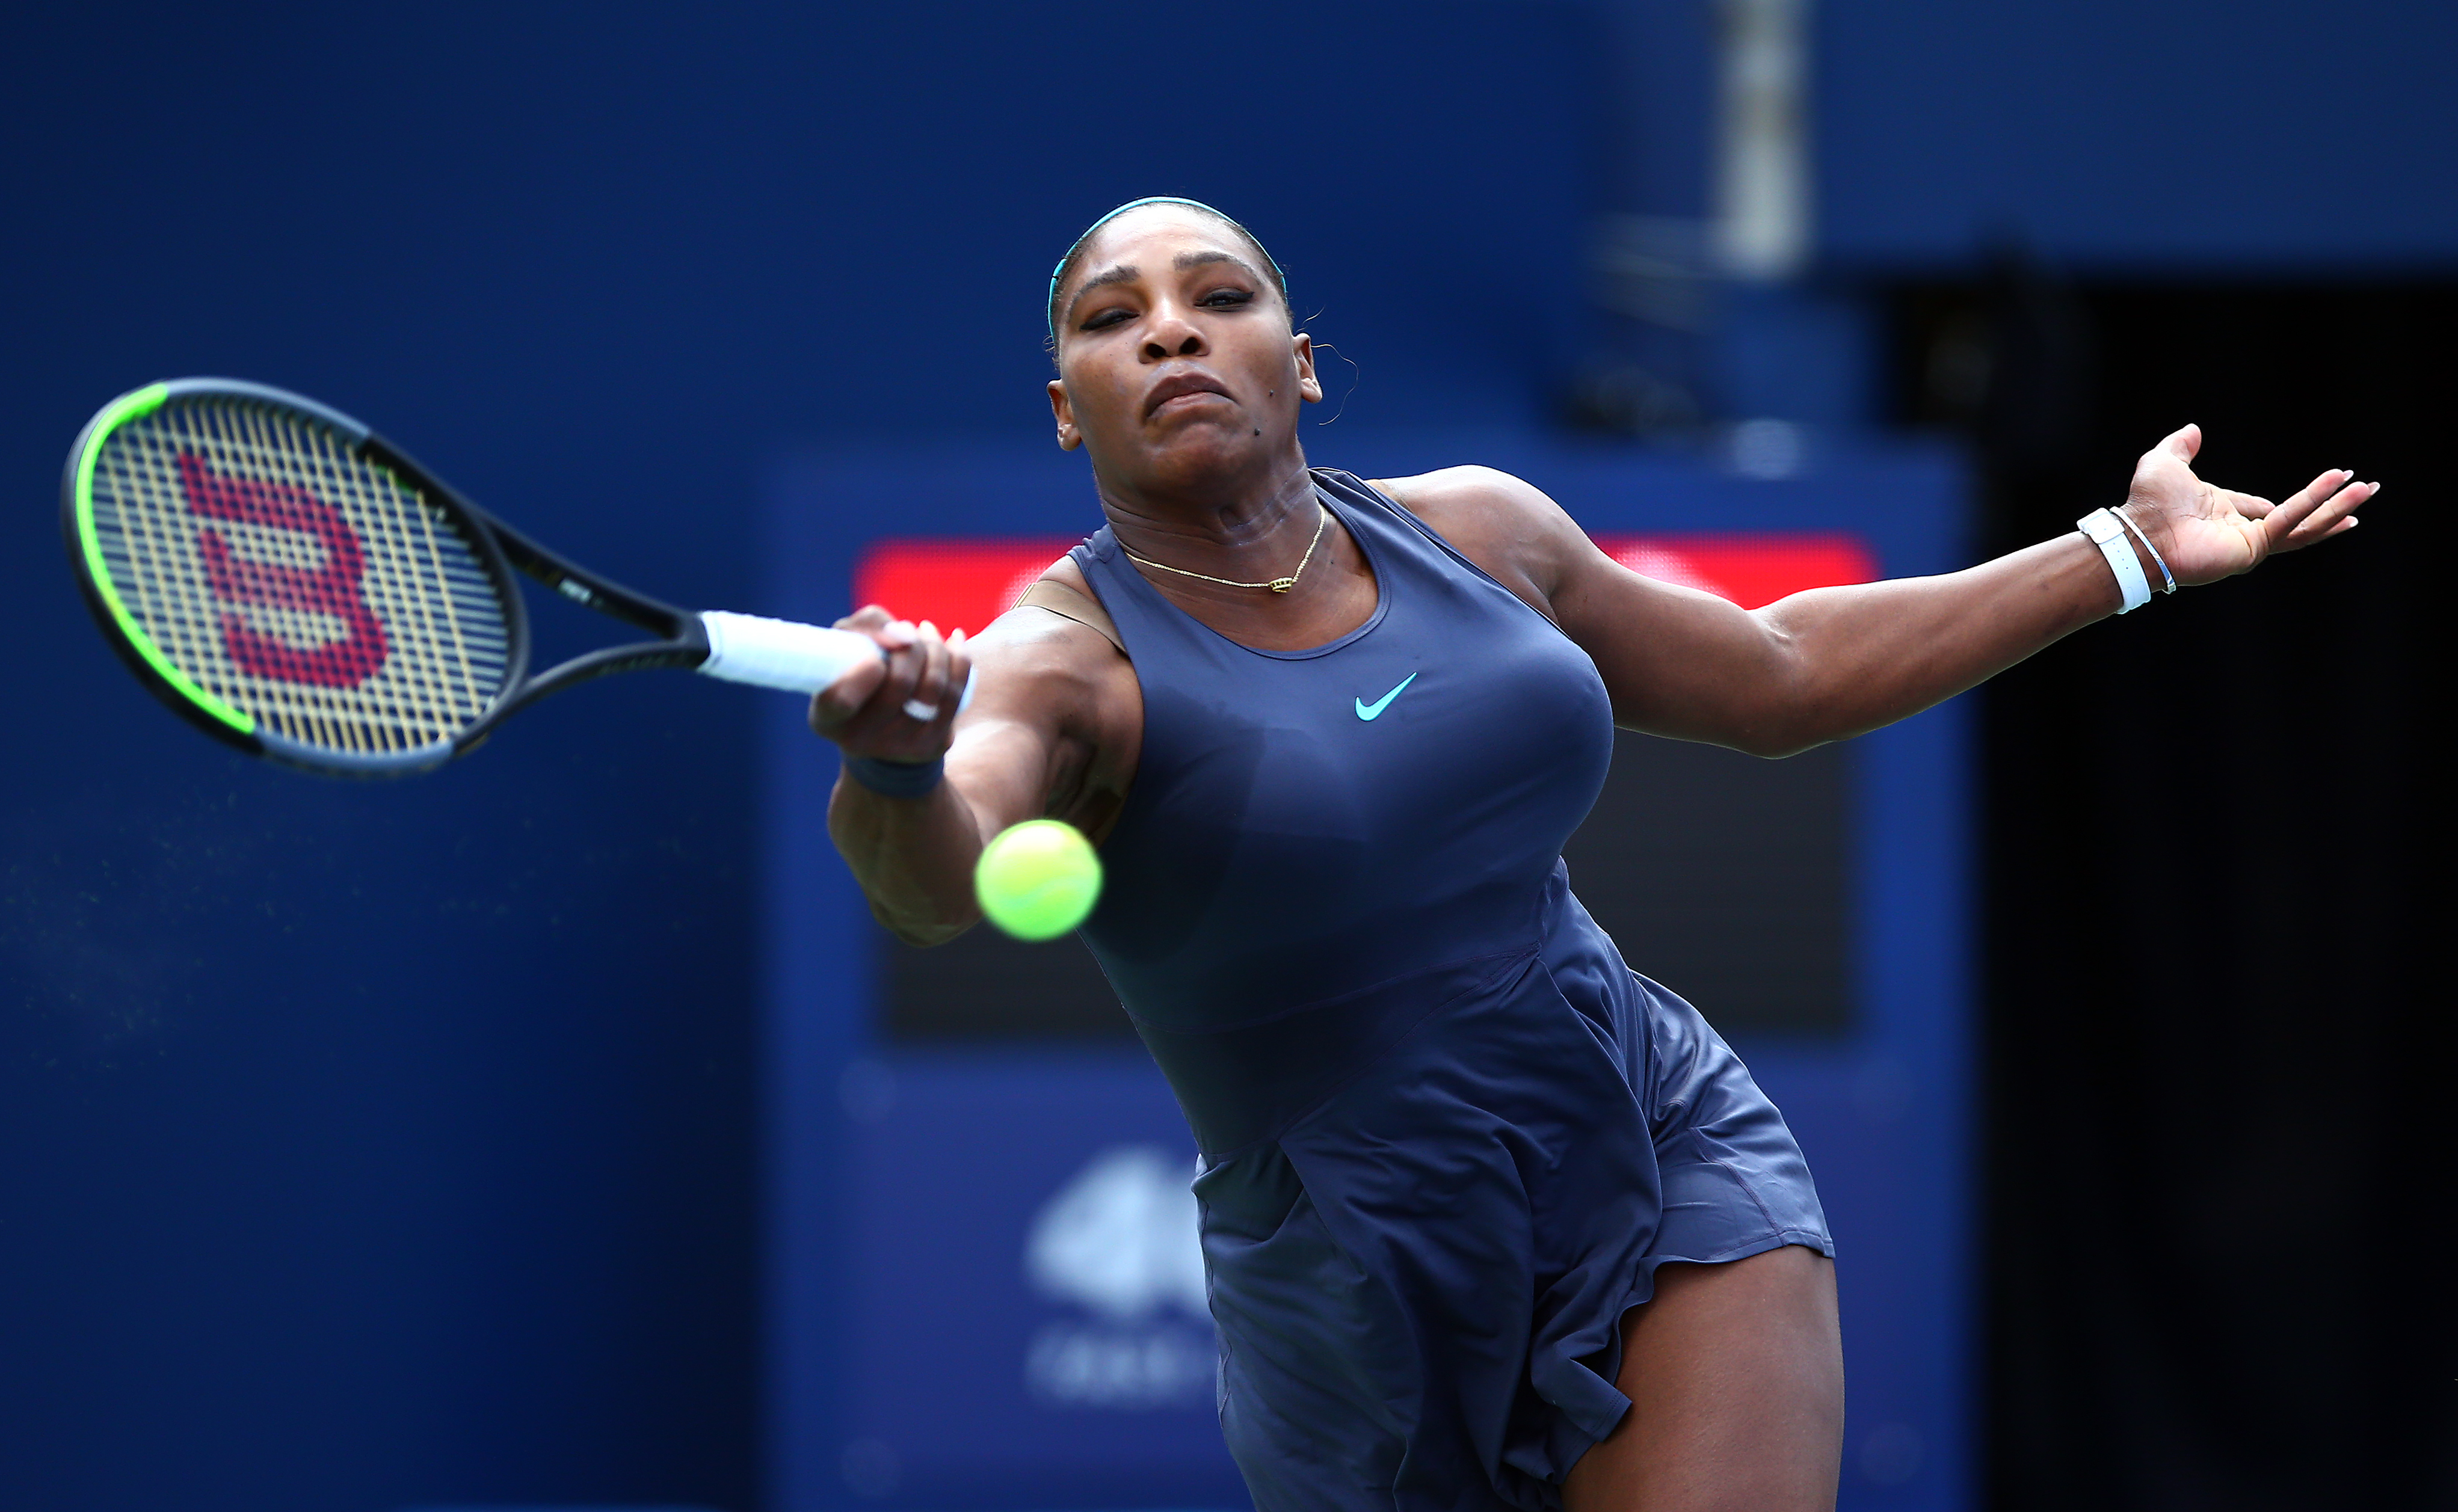 Rogers Cup Toronto - Day 9